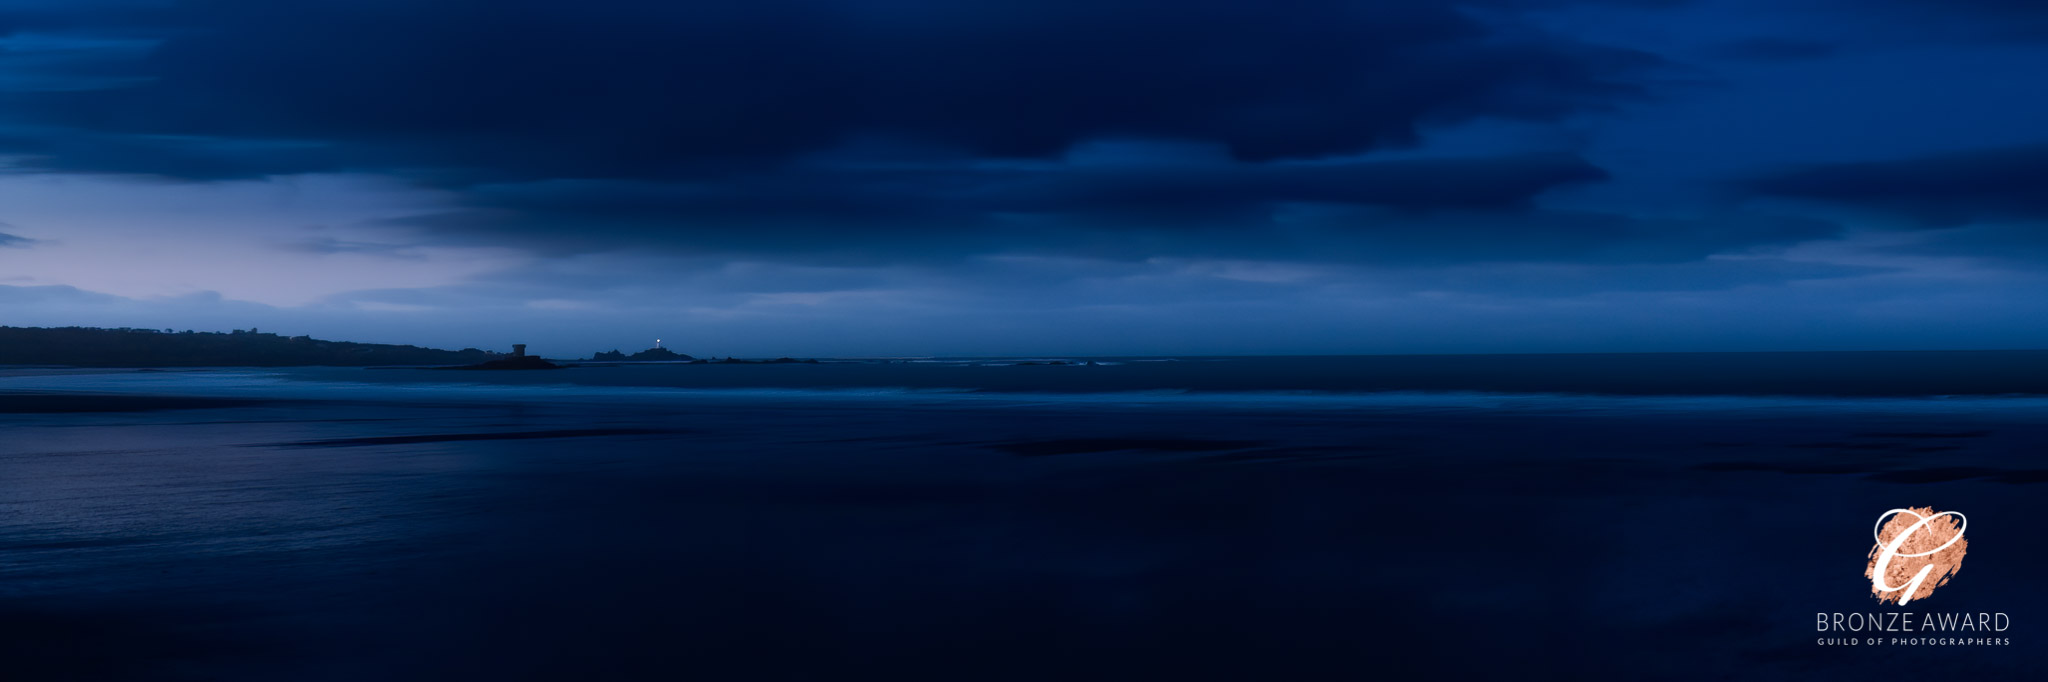 Blue hour vista taken before dawn showing Corbiére Lighthouse shining, and deep blue beach and sky at St Ouen's